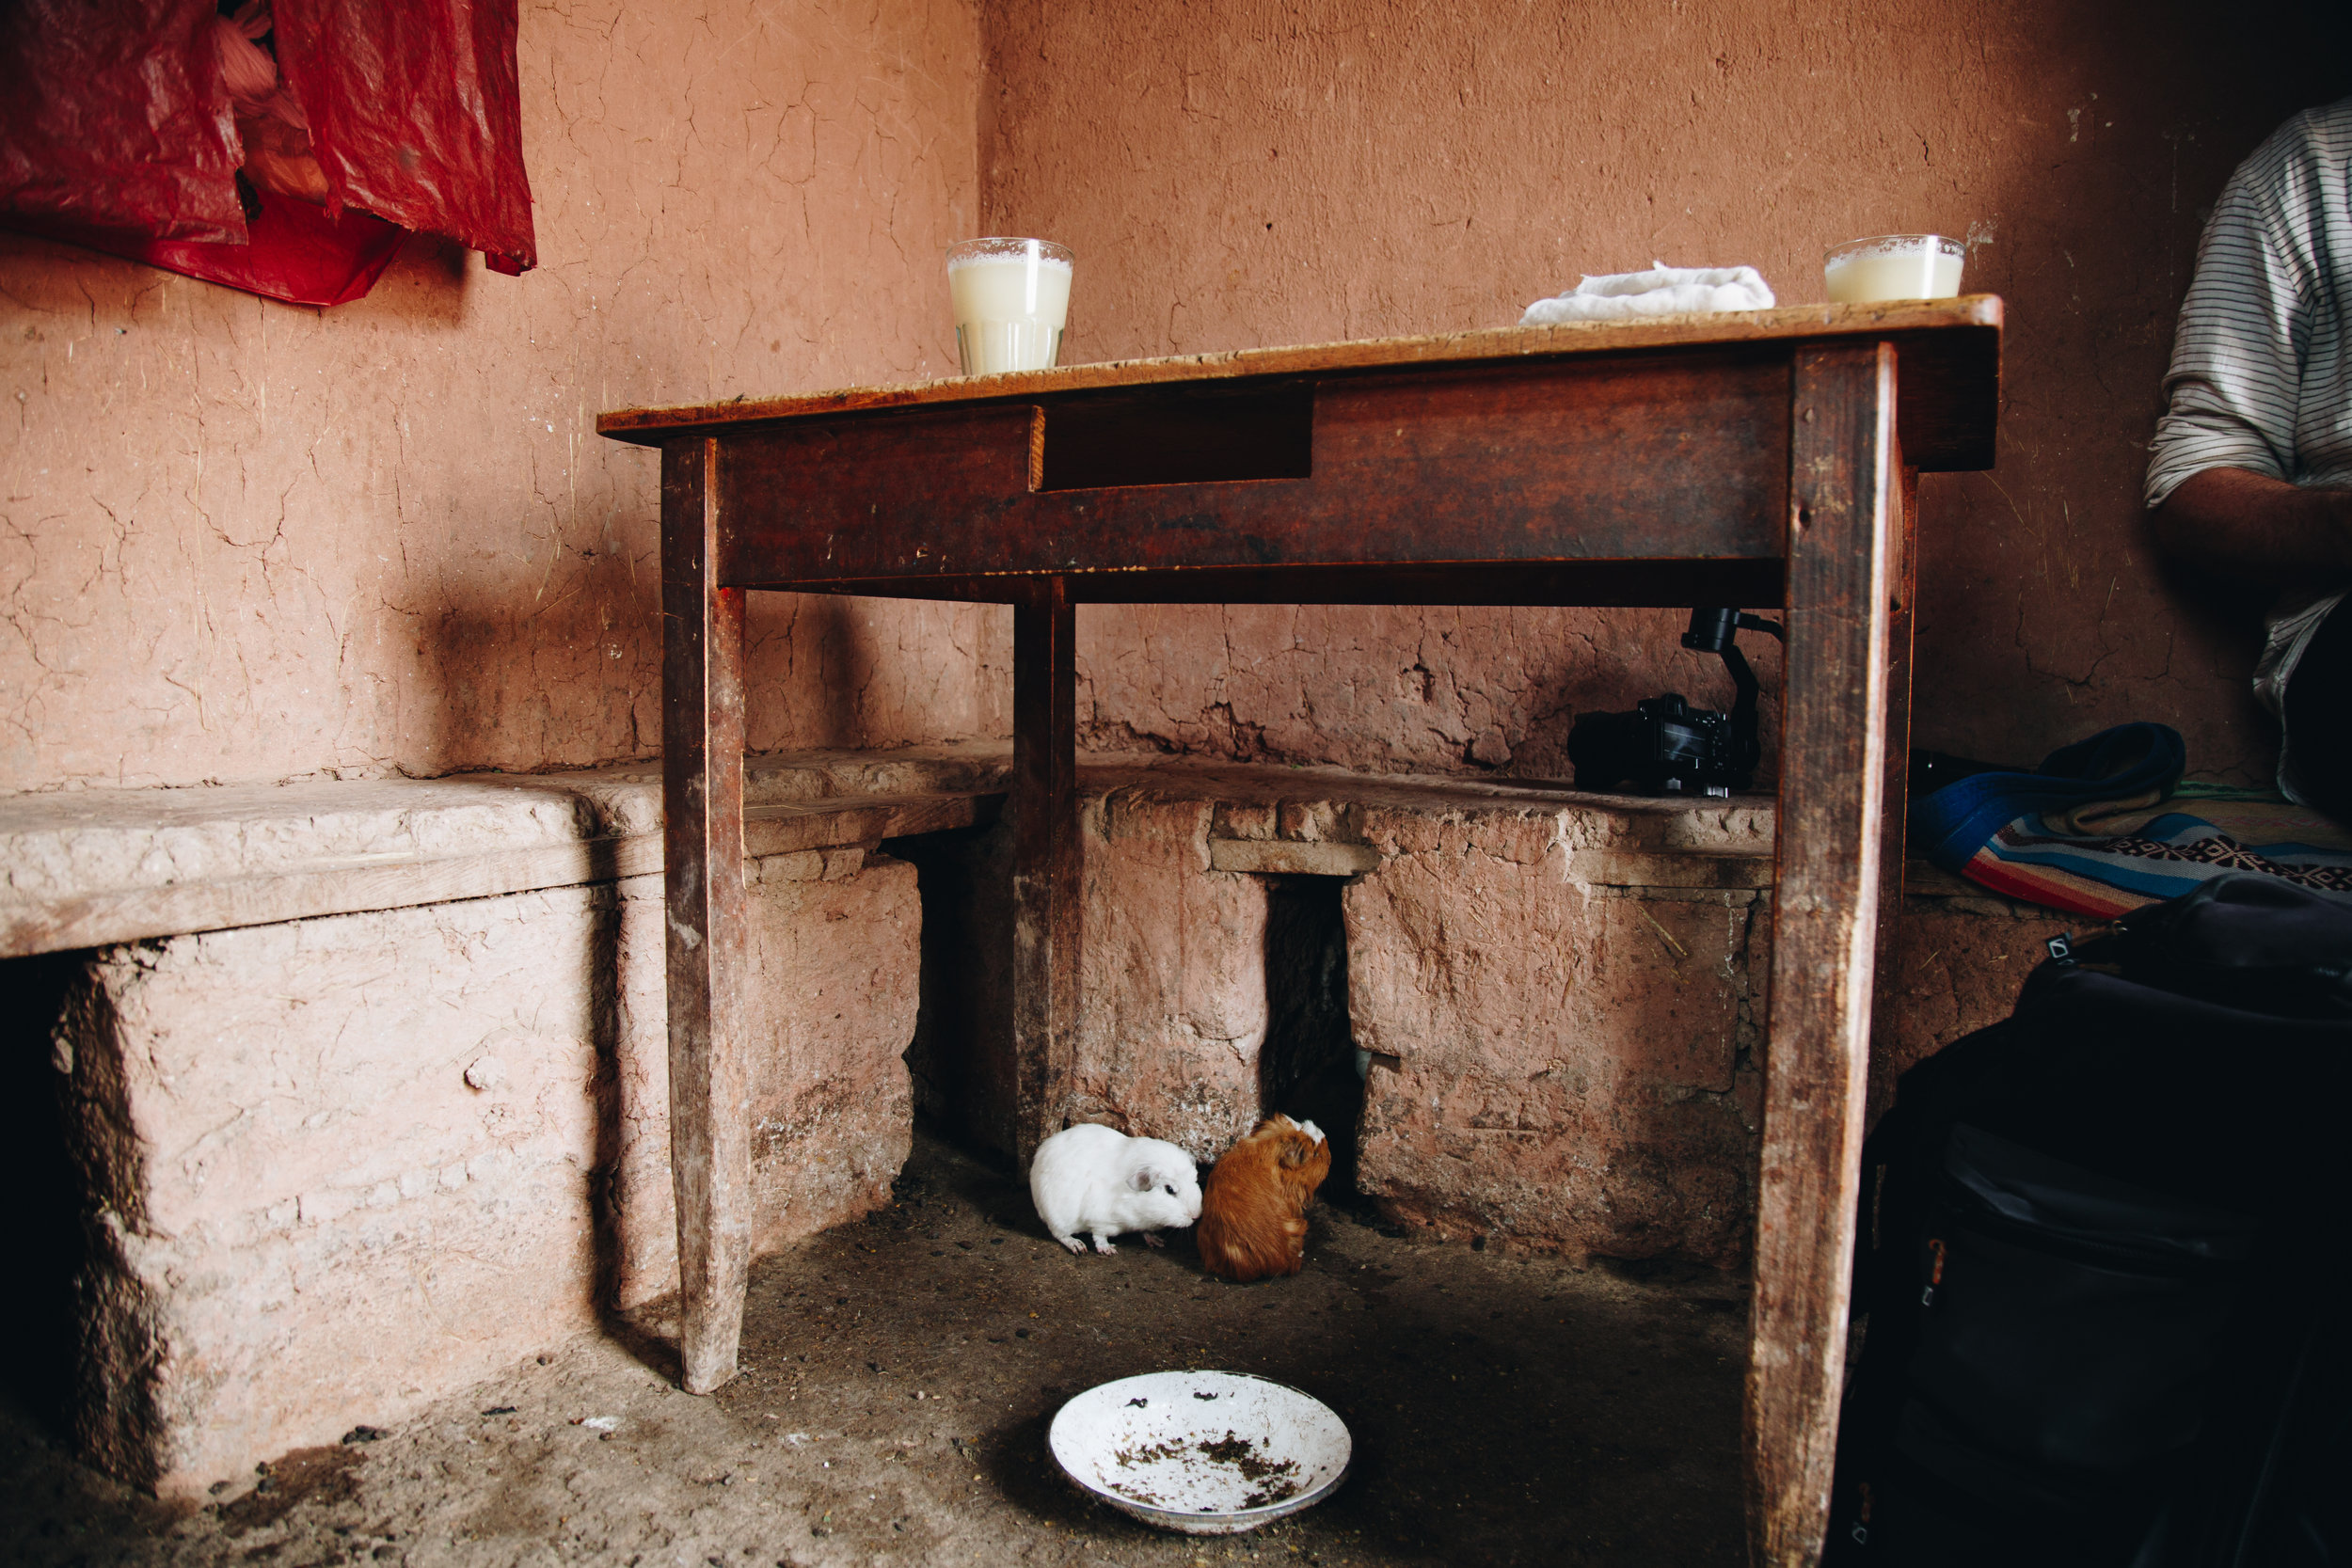 A typical Peruvian kitchen with guinea pigs being raised in a household. They will eventually end up on a plate :(